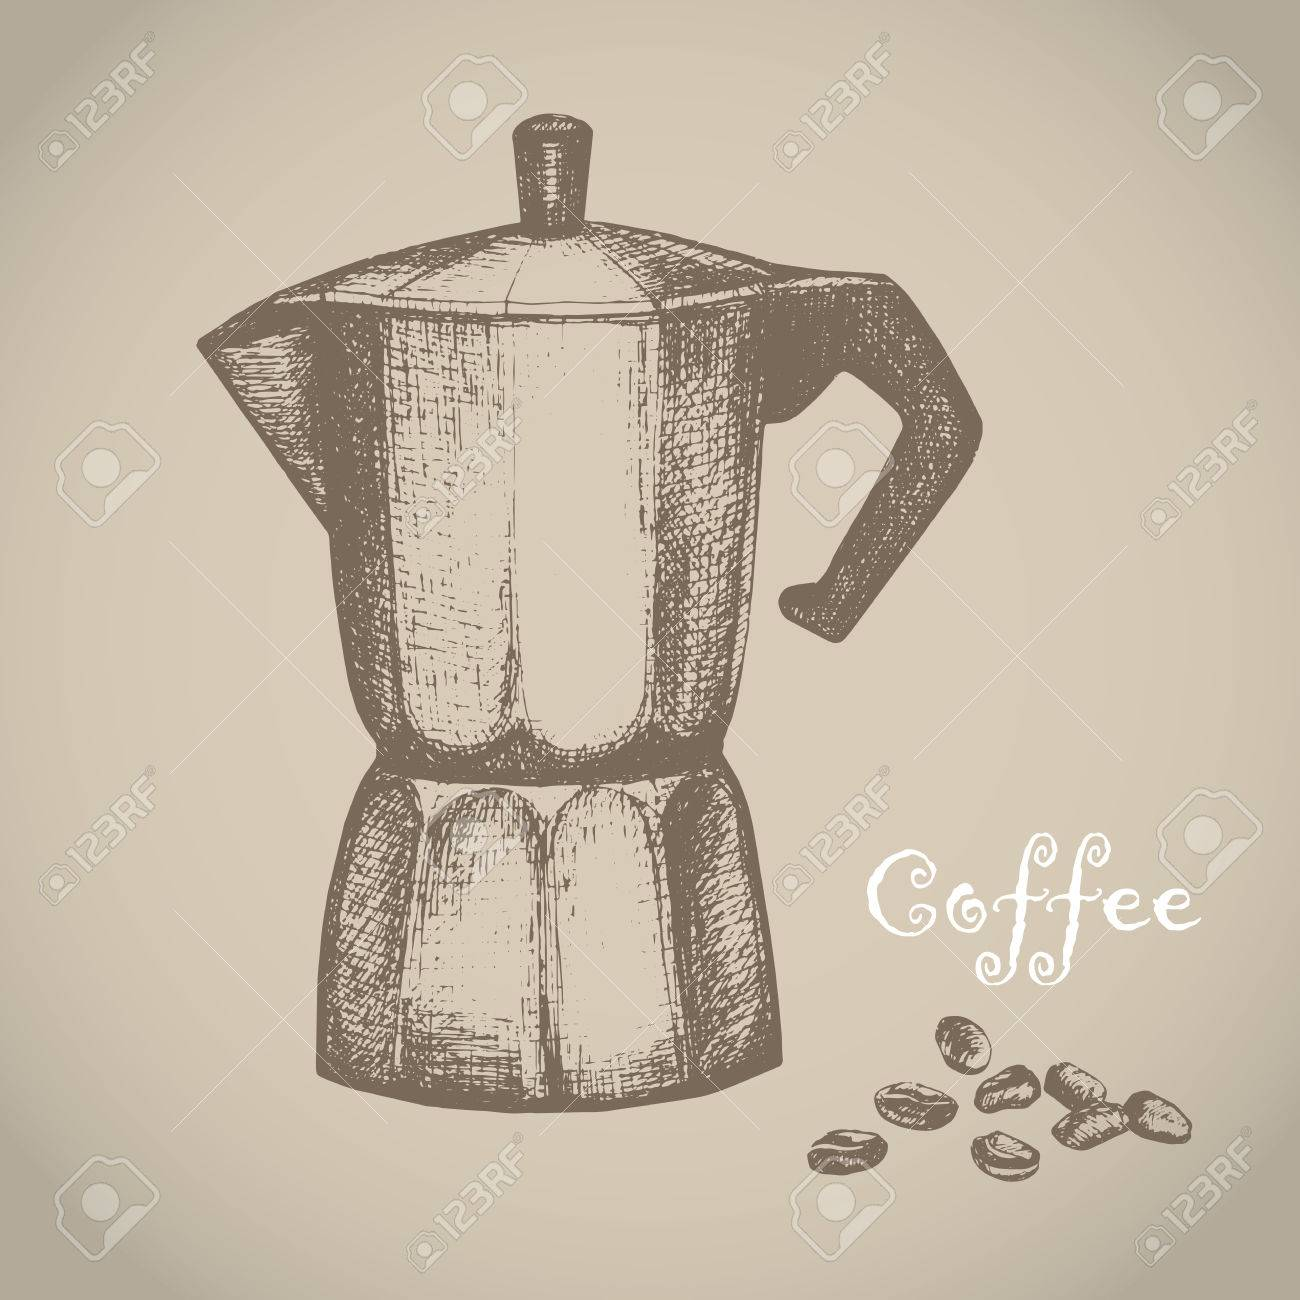 The black ink drawing of coffee maker isolated on white background. Vector illustration. Hand-drawn sketch style. Kitchen utensils sketch. - 70972344